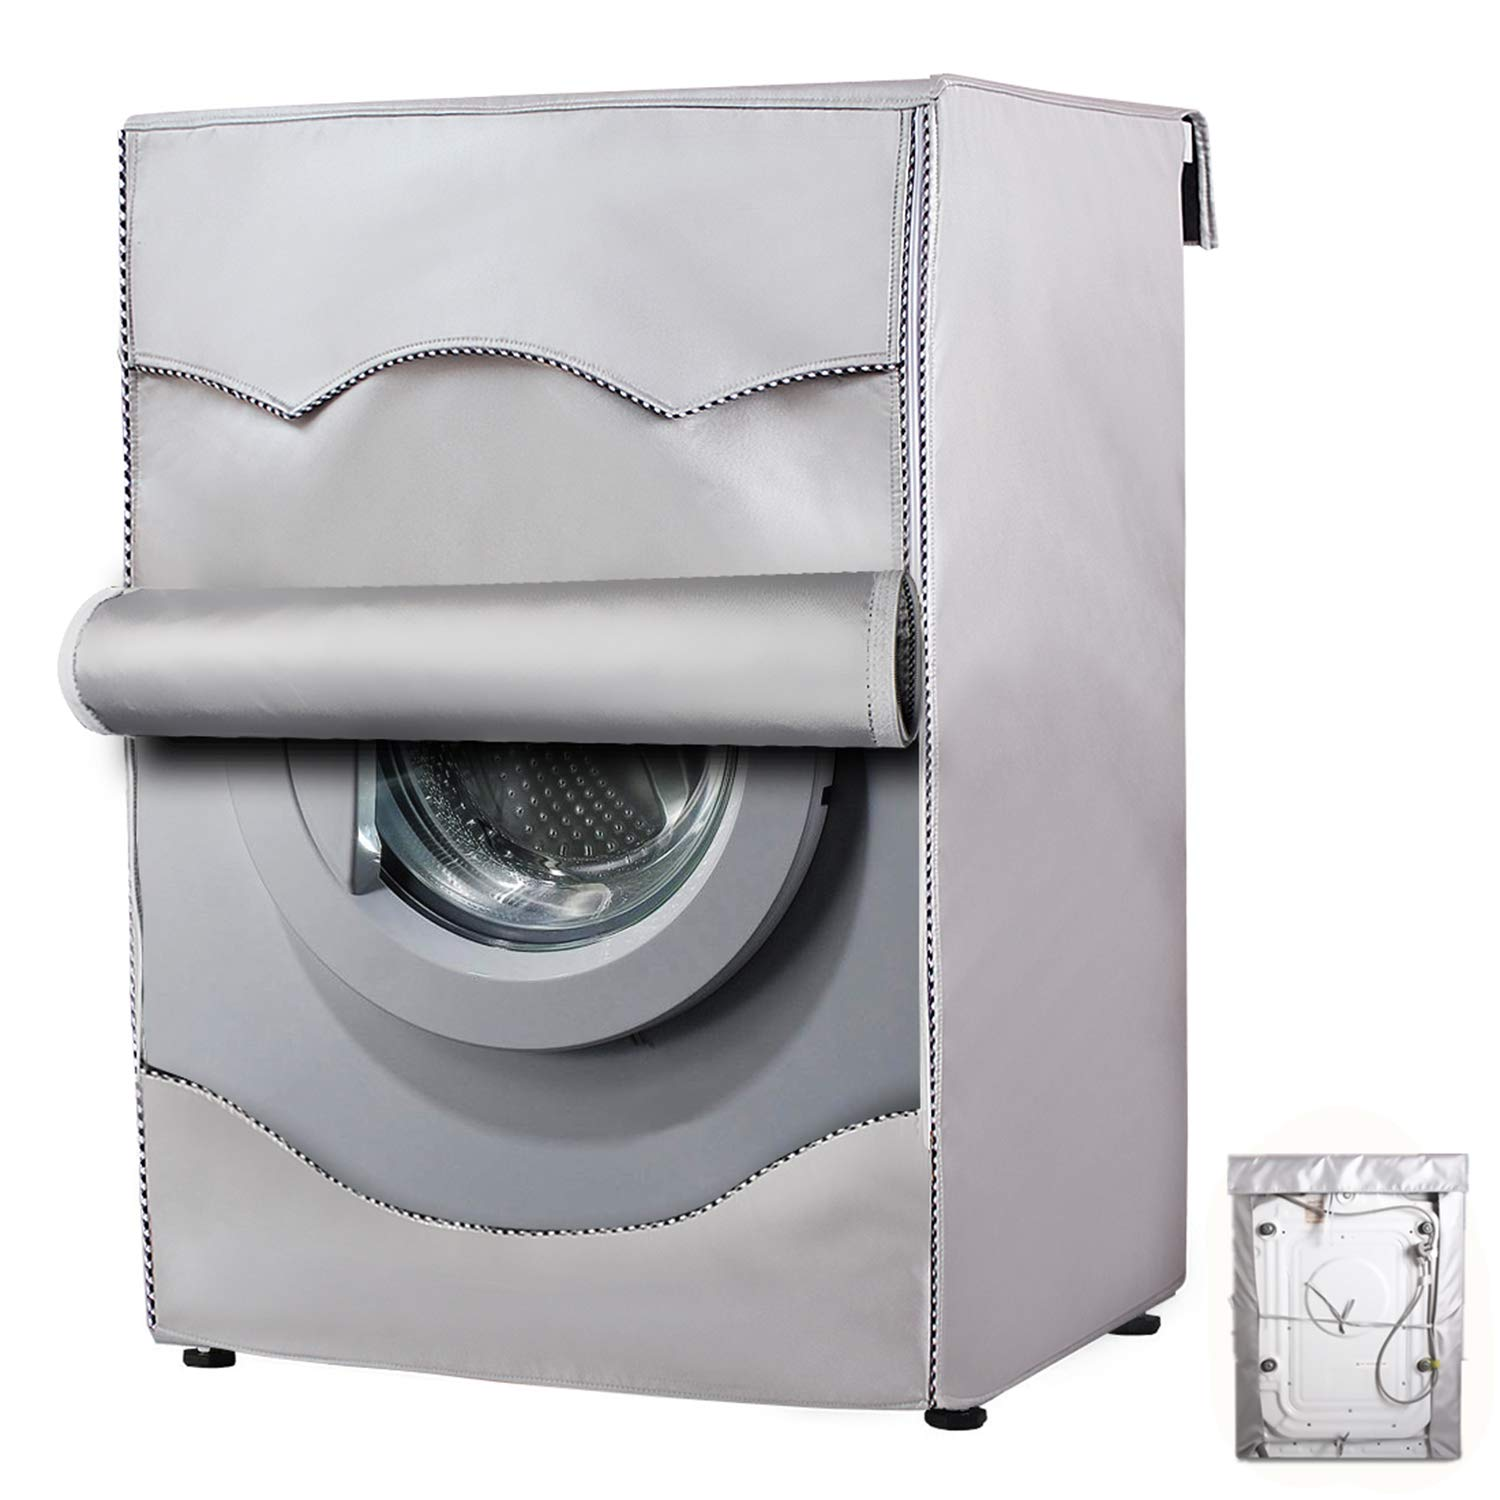 Washer/Dryer cover For Front-loading machine Waterproof dustproof Thin (W23 D25 H33 in,Thin)